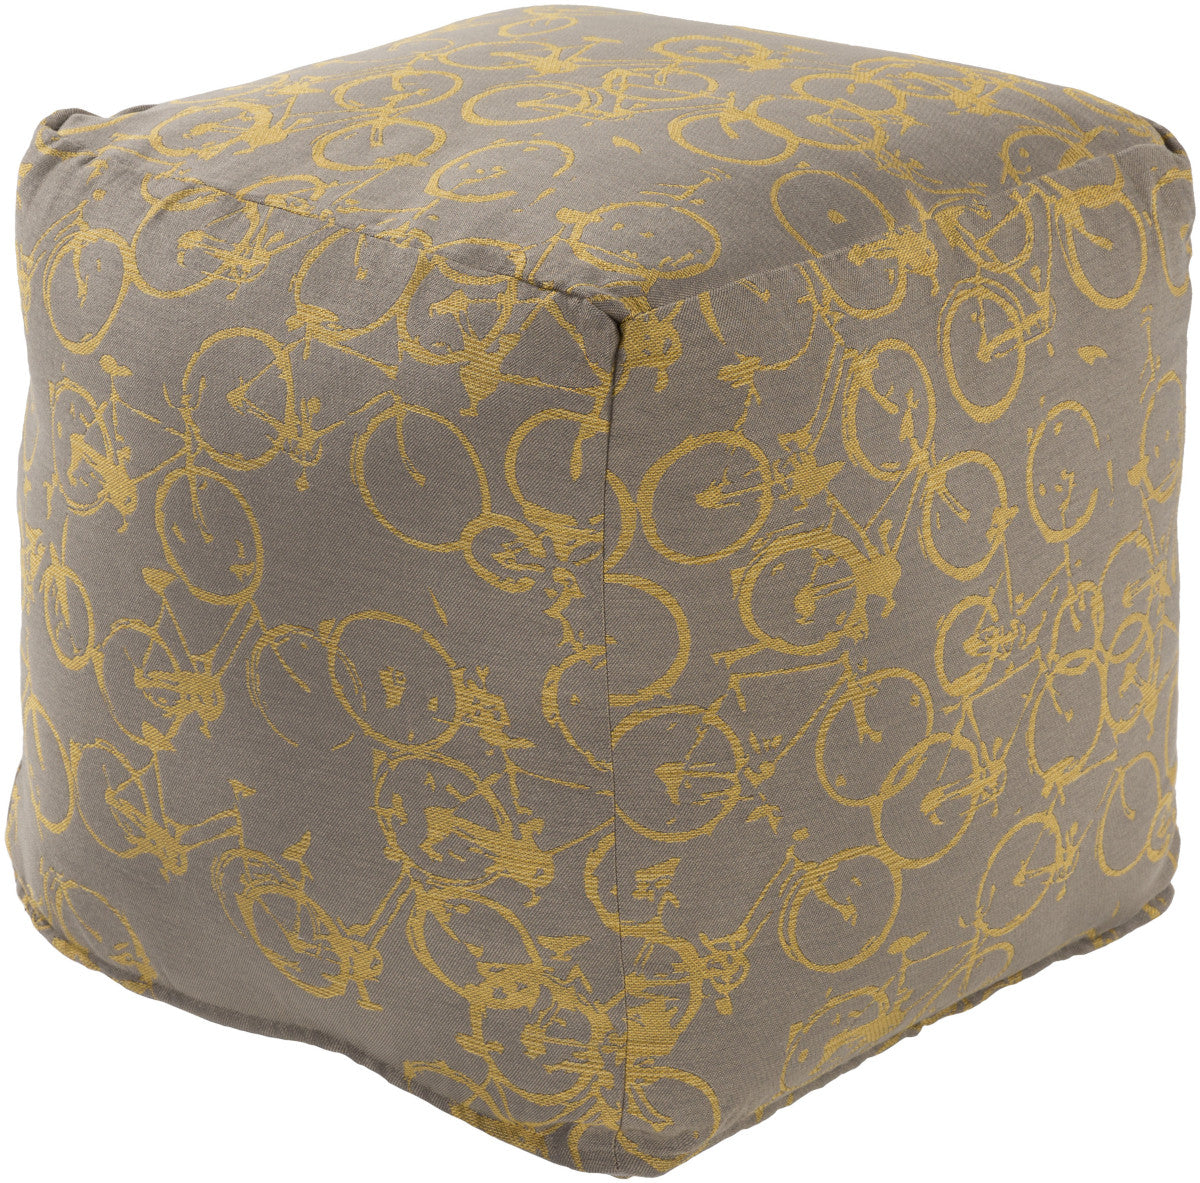 Surya Peddle Power PDPF-002 Neutral Pouf by Mike Farrell